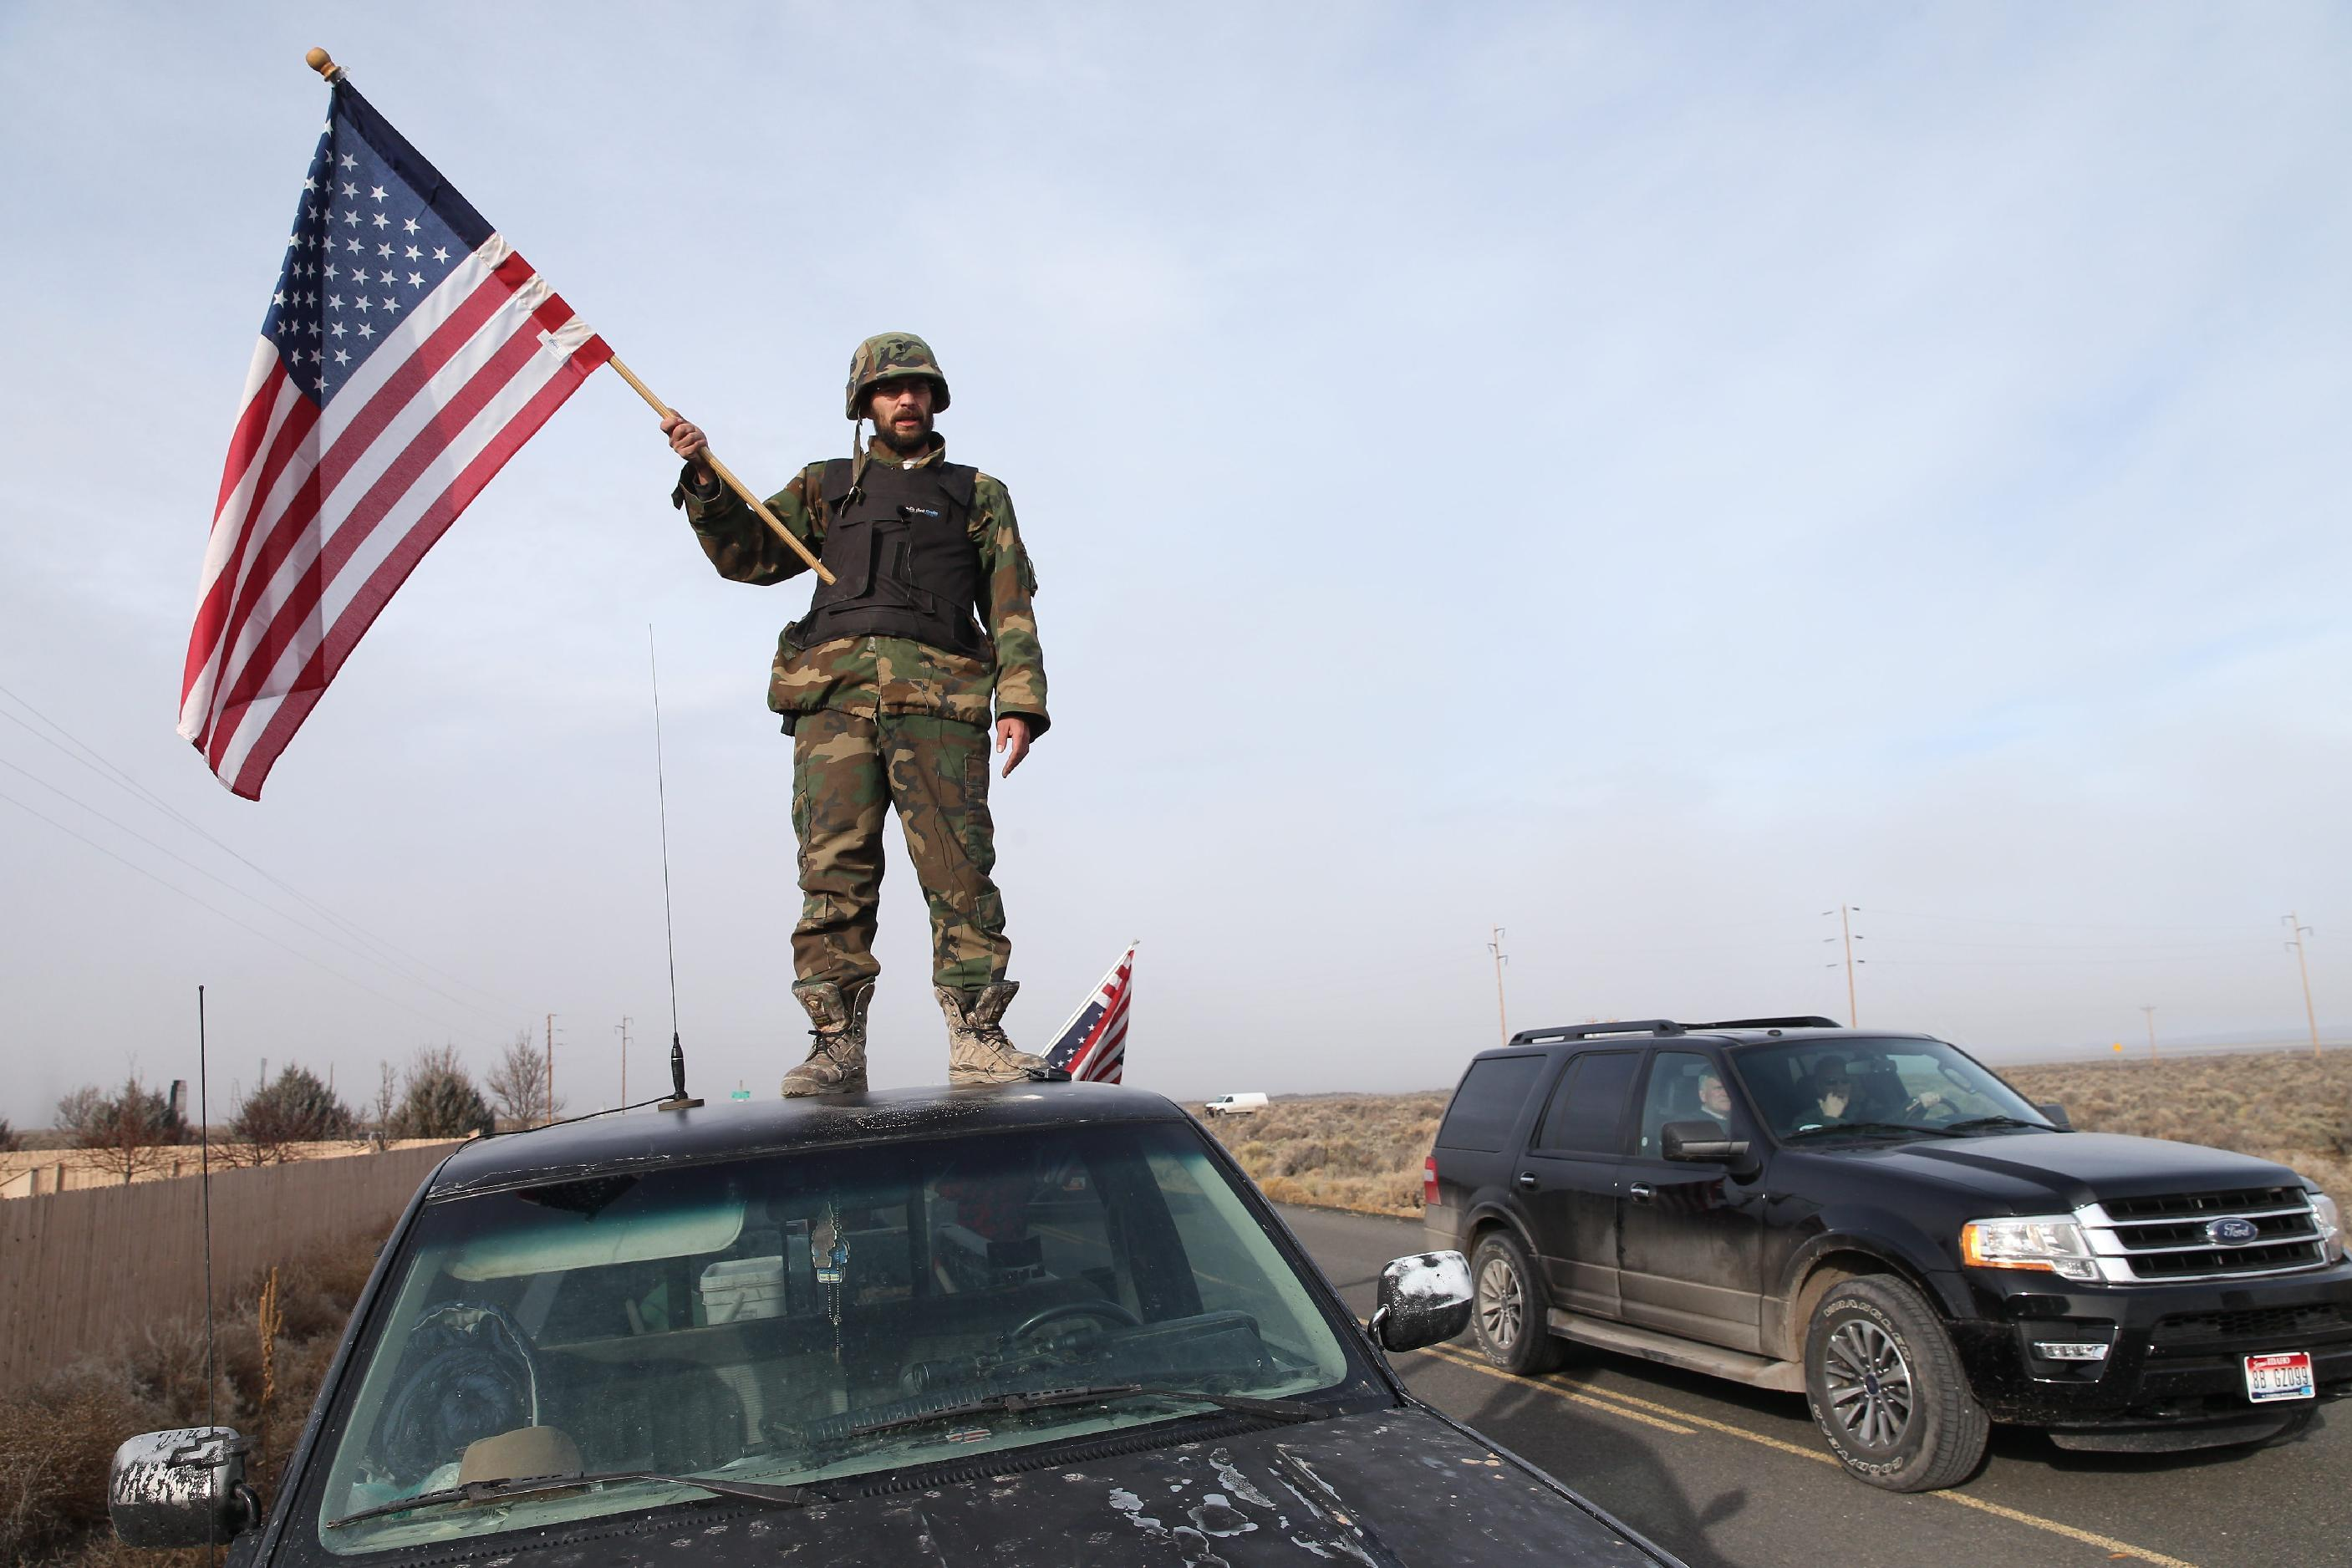 After Oregon standoff, some say: Right fight; wrong tactics